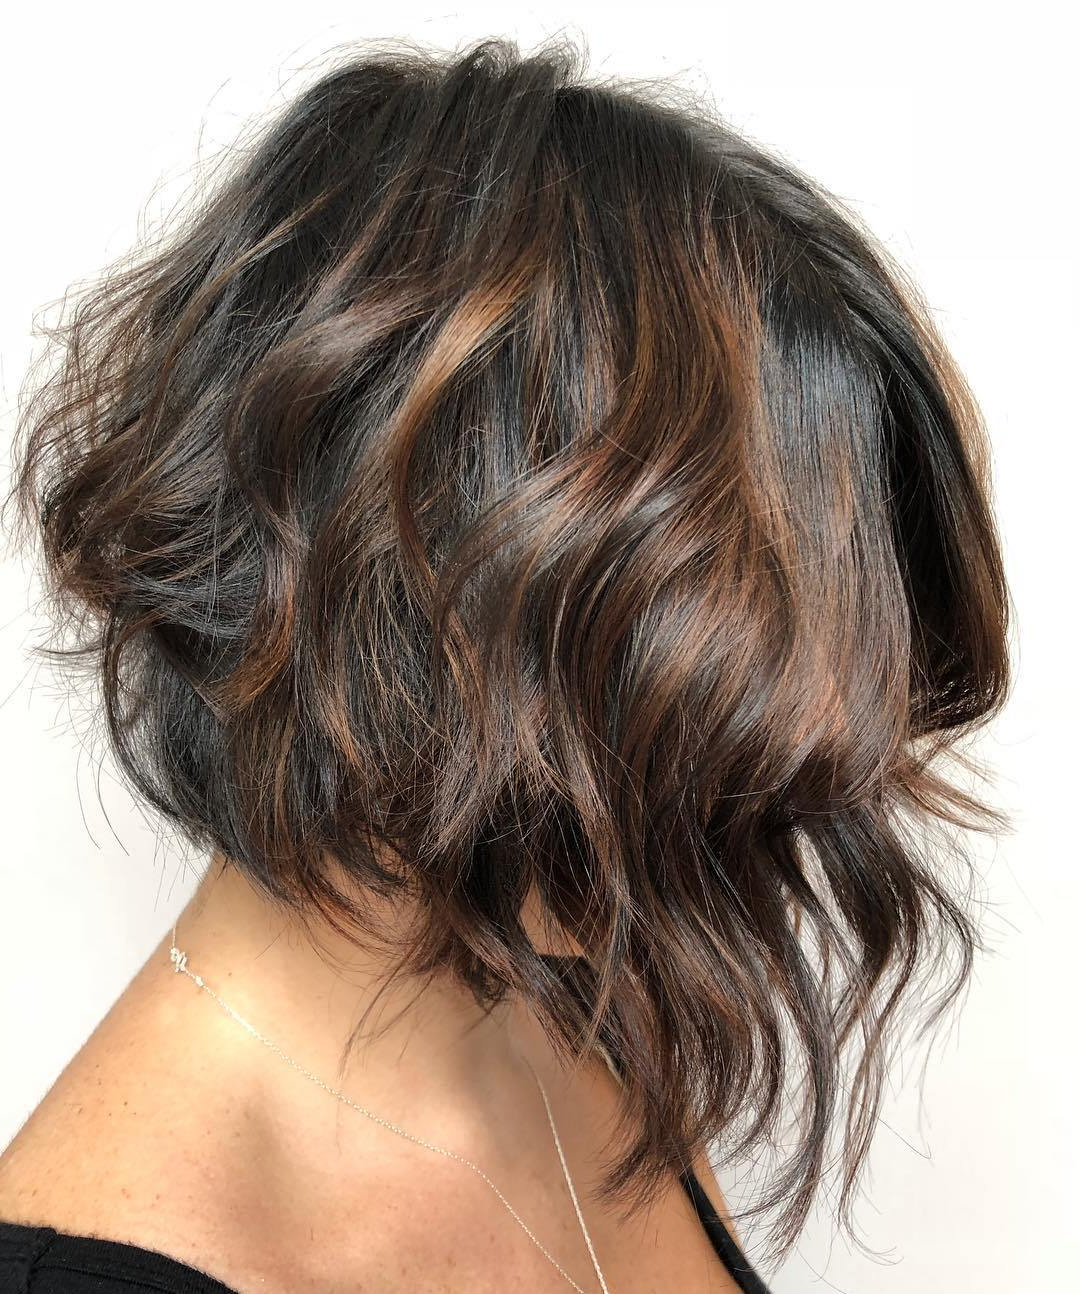 40 Short Hairstyles For Thick Hair (Trendy In 2019 2020 Intended For Most Recently Released Two Tone Disheveled Layered Hairstyles (View 5 of 20)